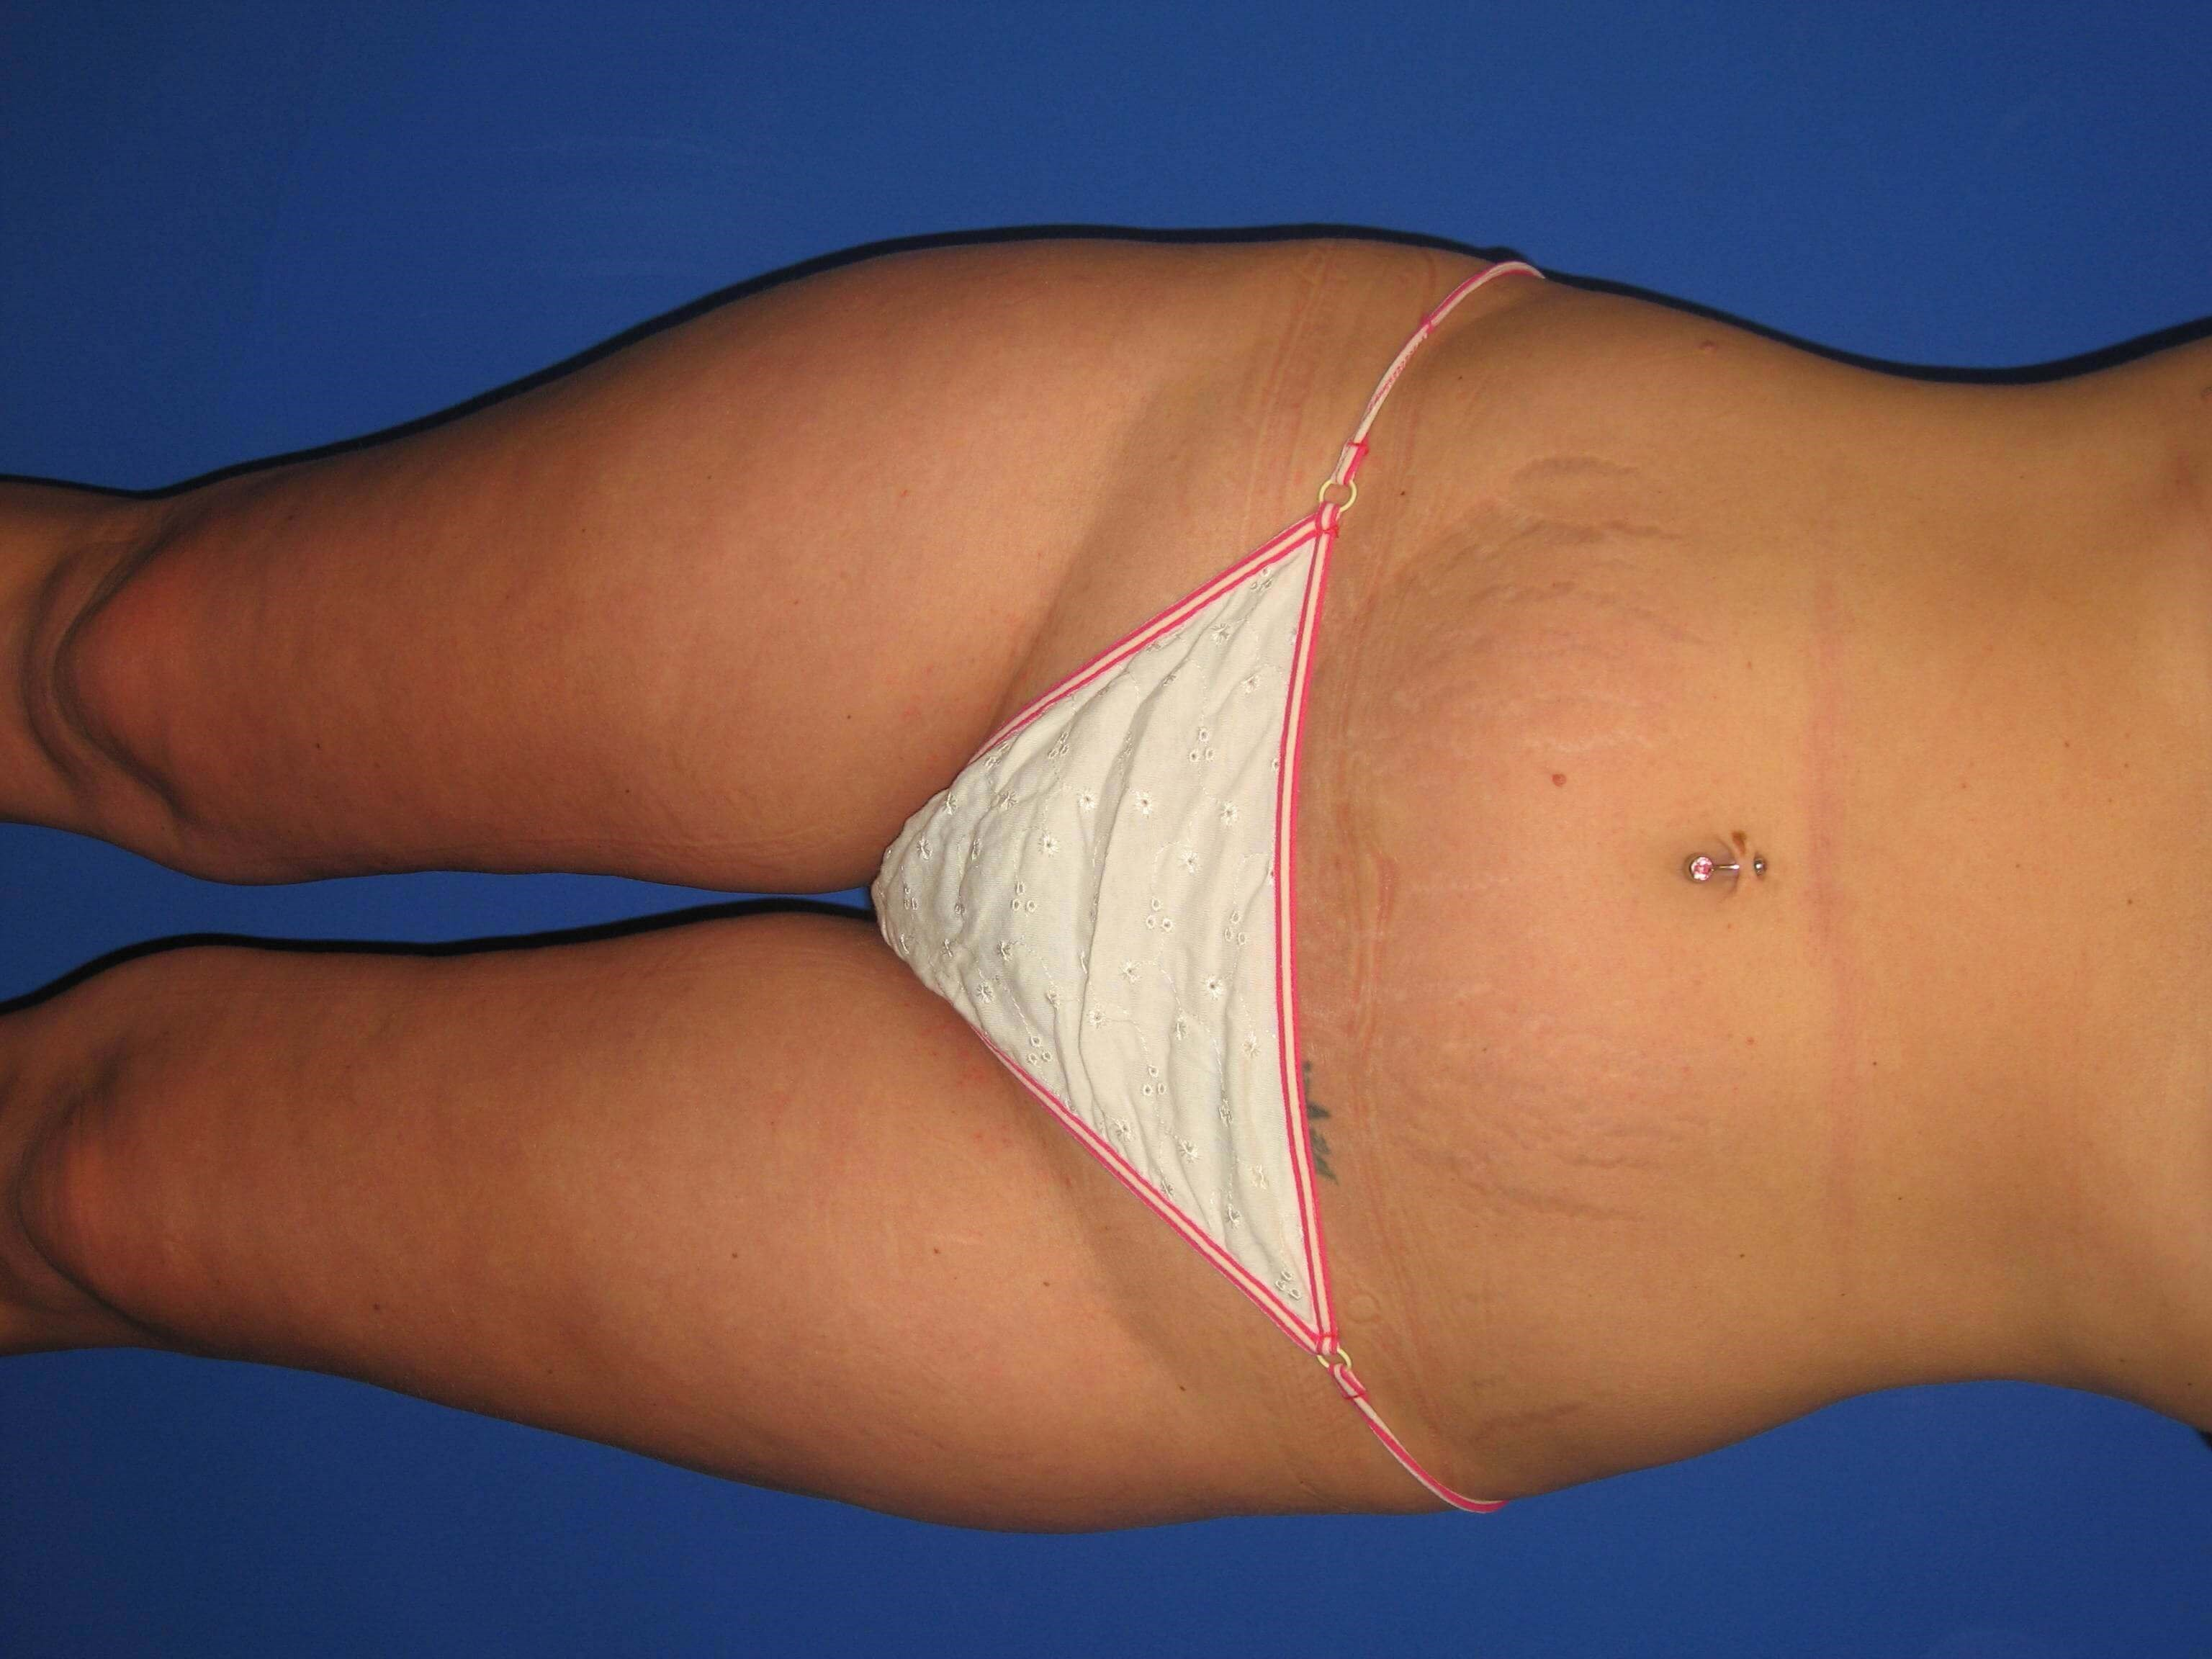 Mini Tummy Tuck Before